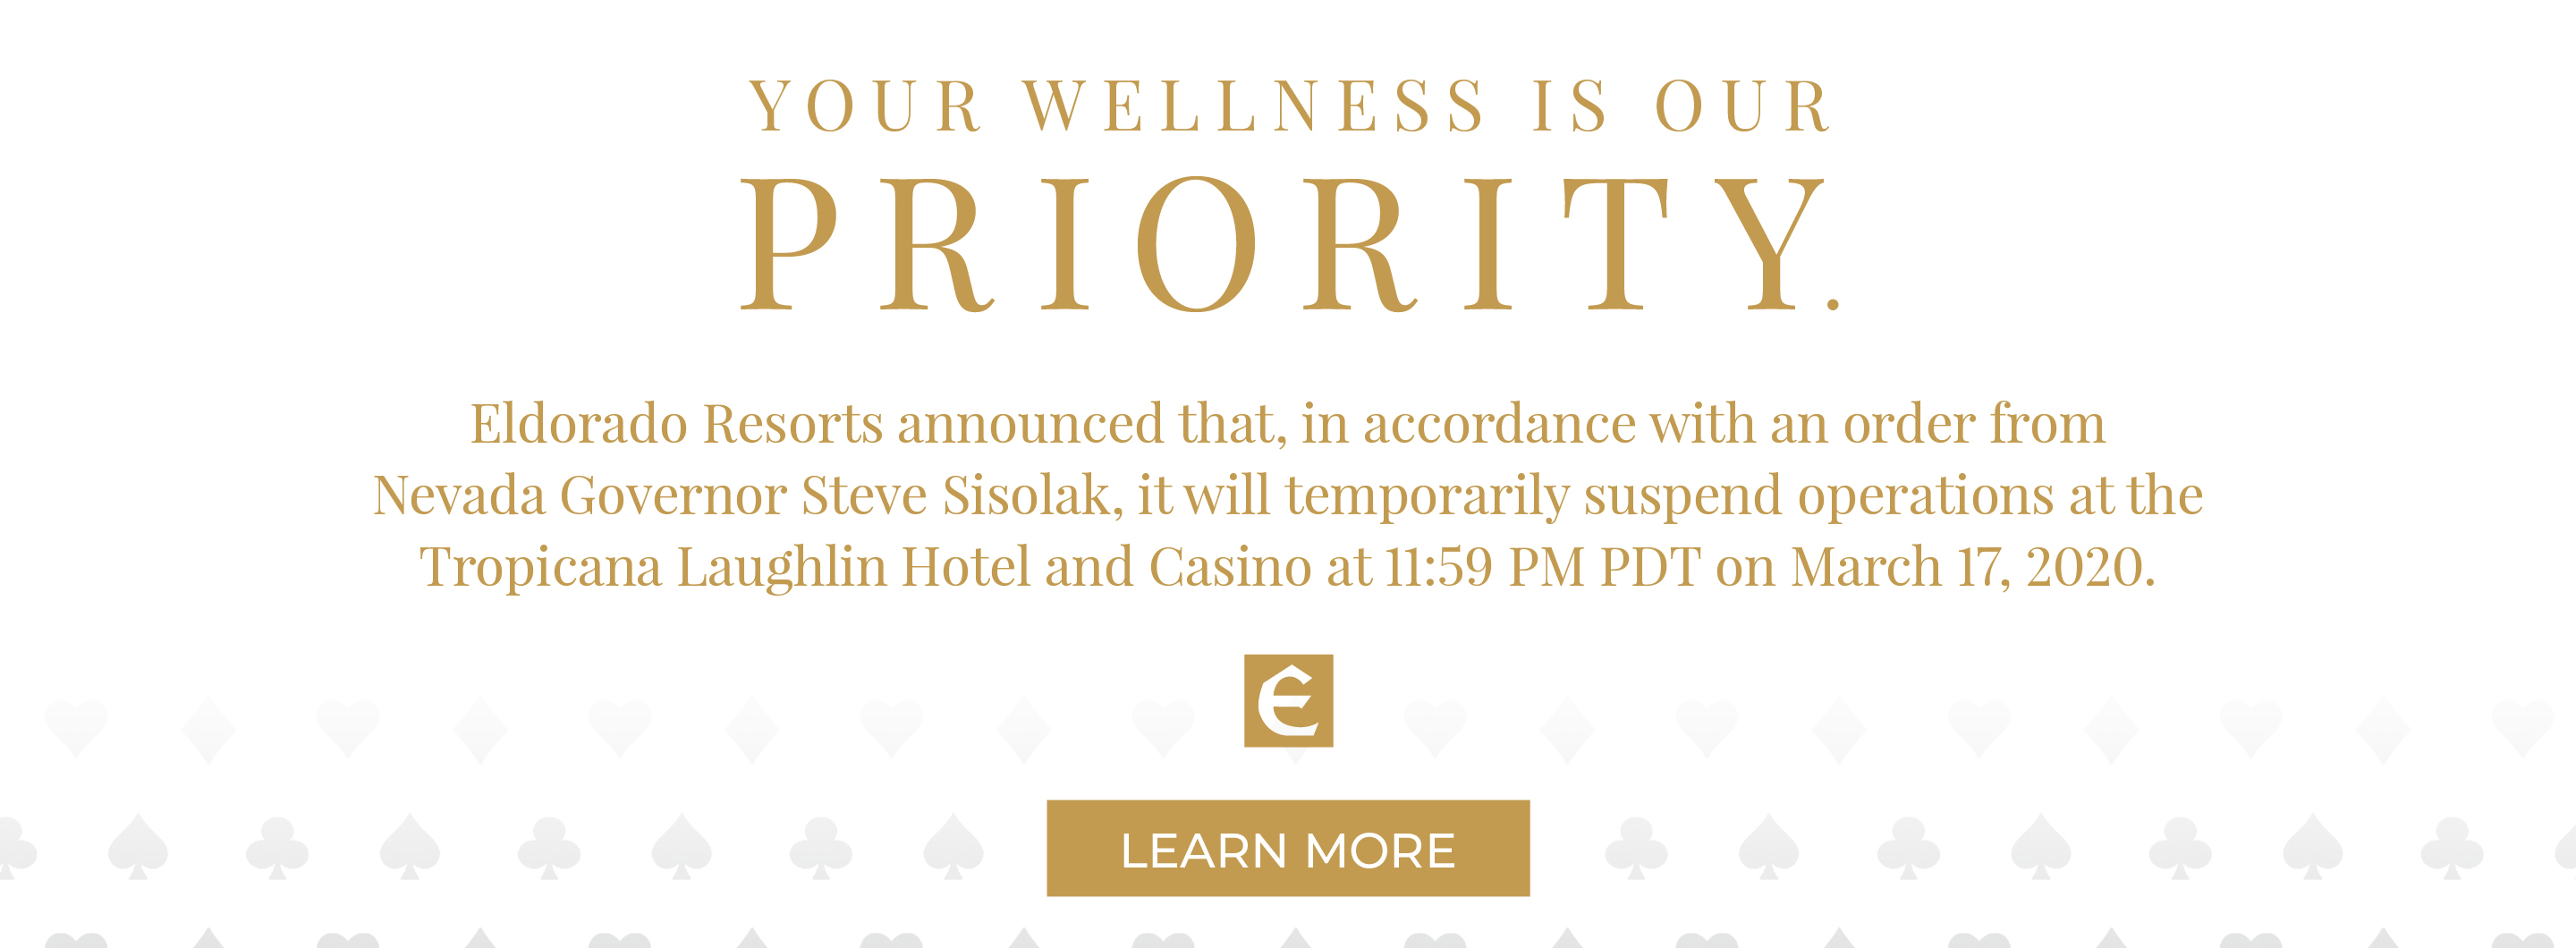 Eldorado Resorts announcement to suspend operation at the Tropicana Laughlin Hotel and Casino in accordance with an order from Nevada Governor Steve Sisolak